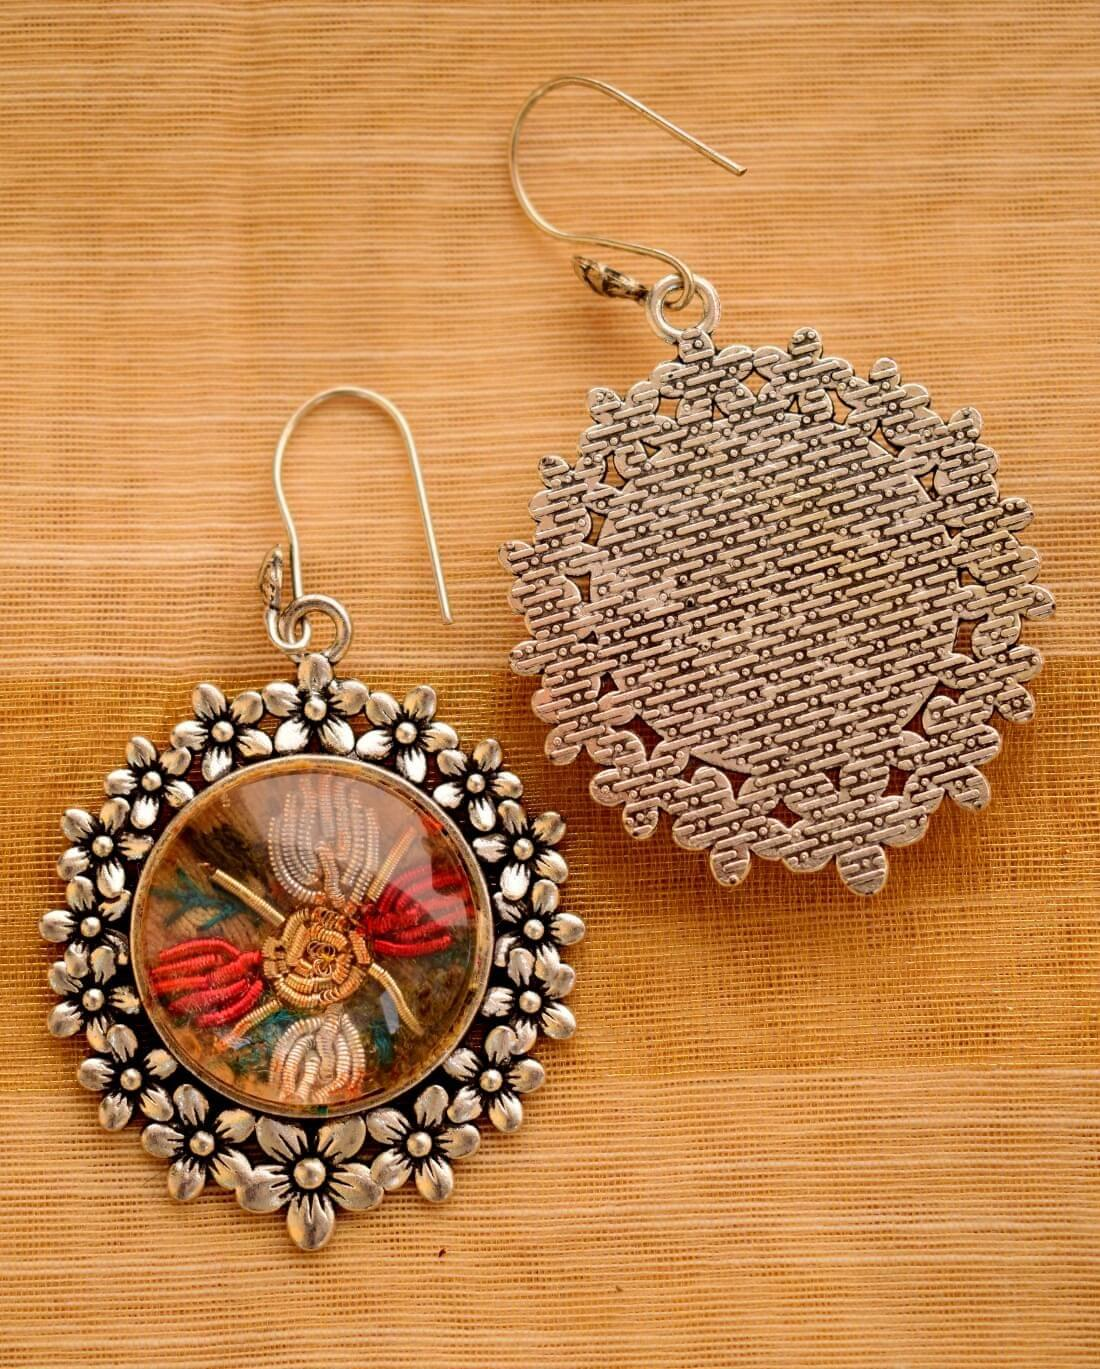 Giftpiper Earring with Hand Embroidery Setting Ornate Frame 3-GIFTPIPER1-Earring